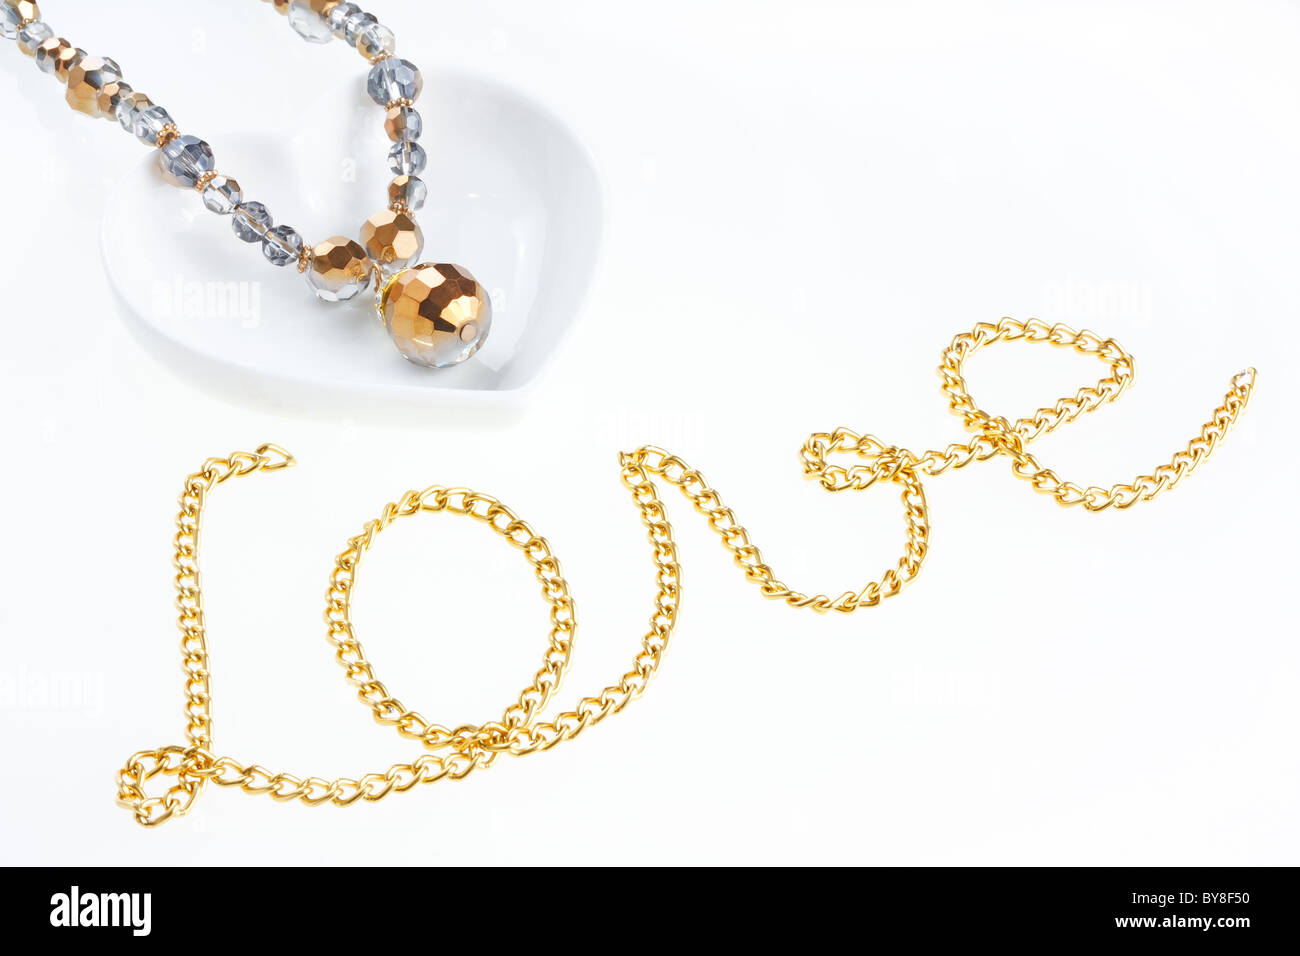 Jewel necklace on heart shaped saucer and yellow metal chain arranged in form of word 'Love' - Stock Image